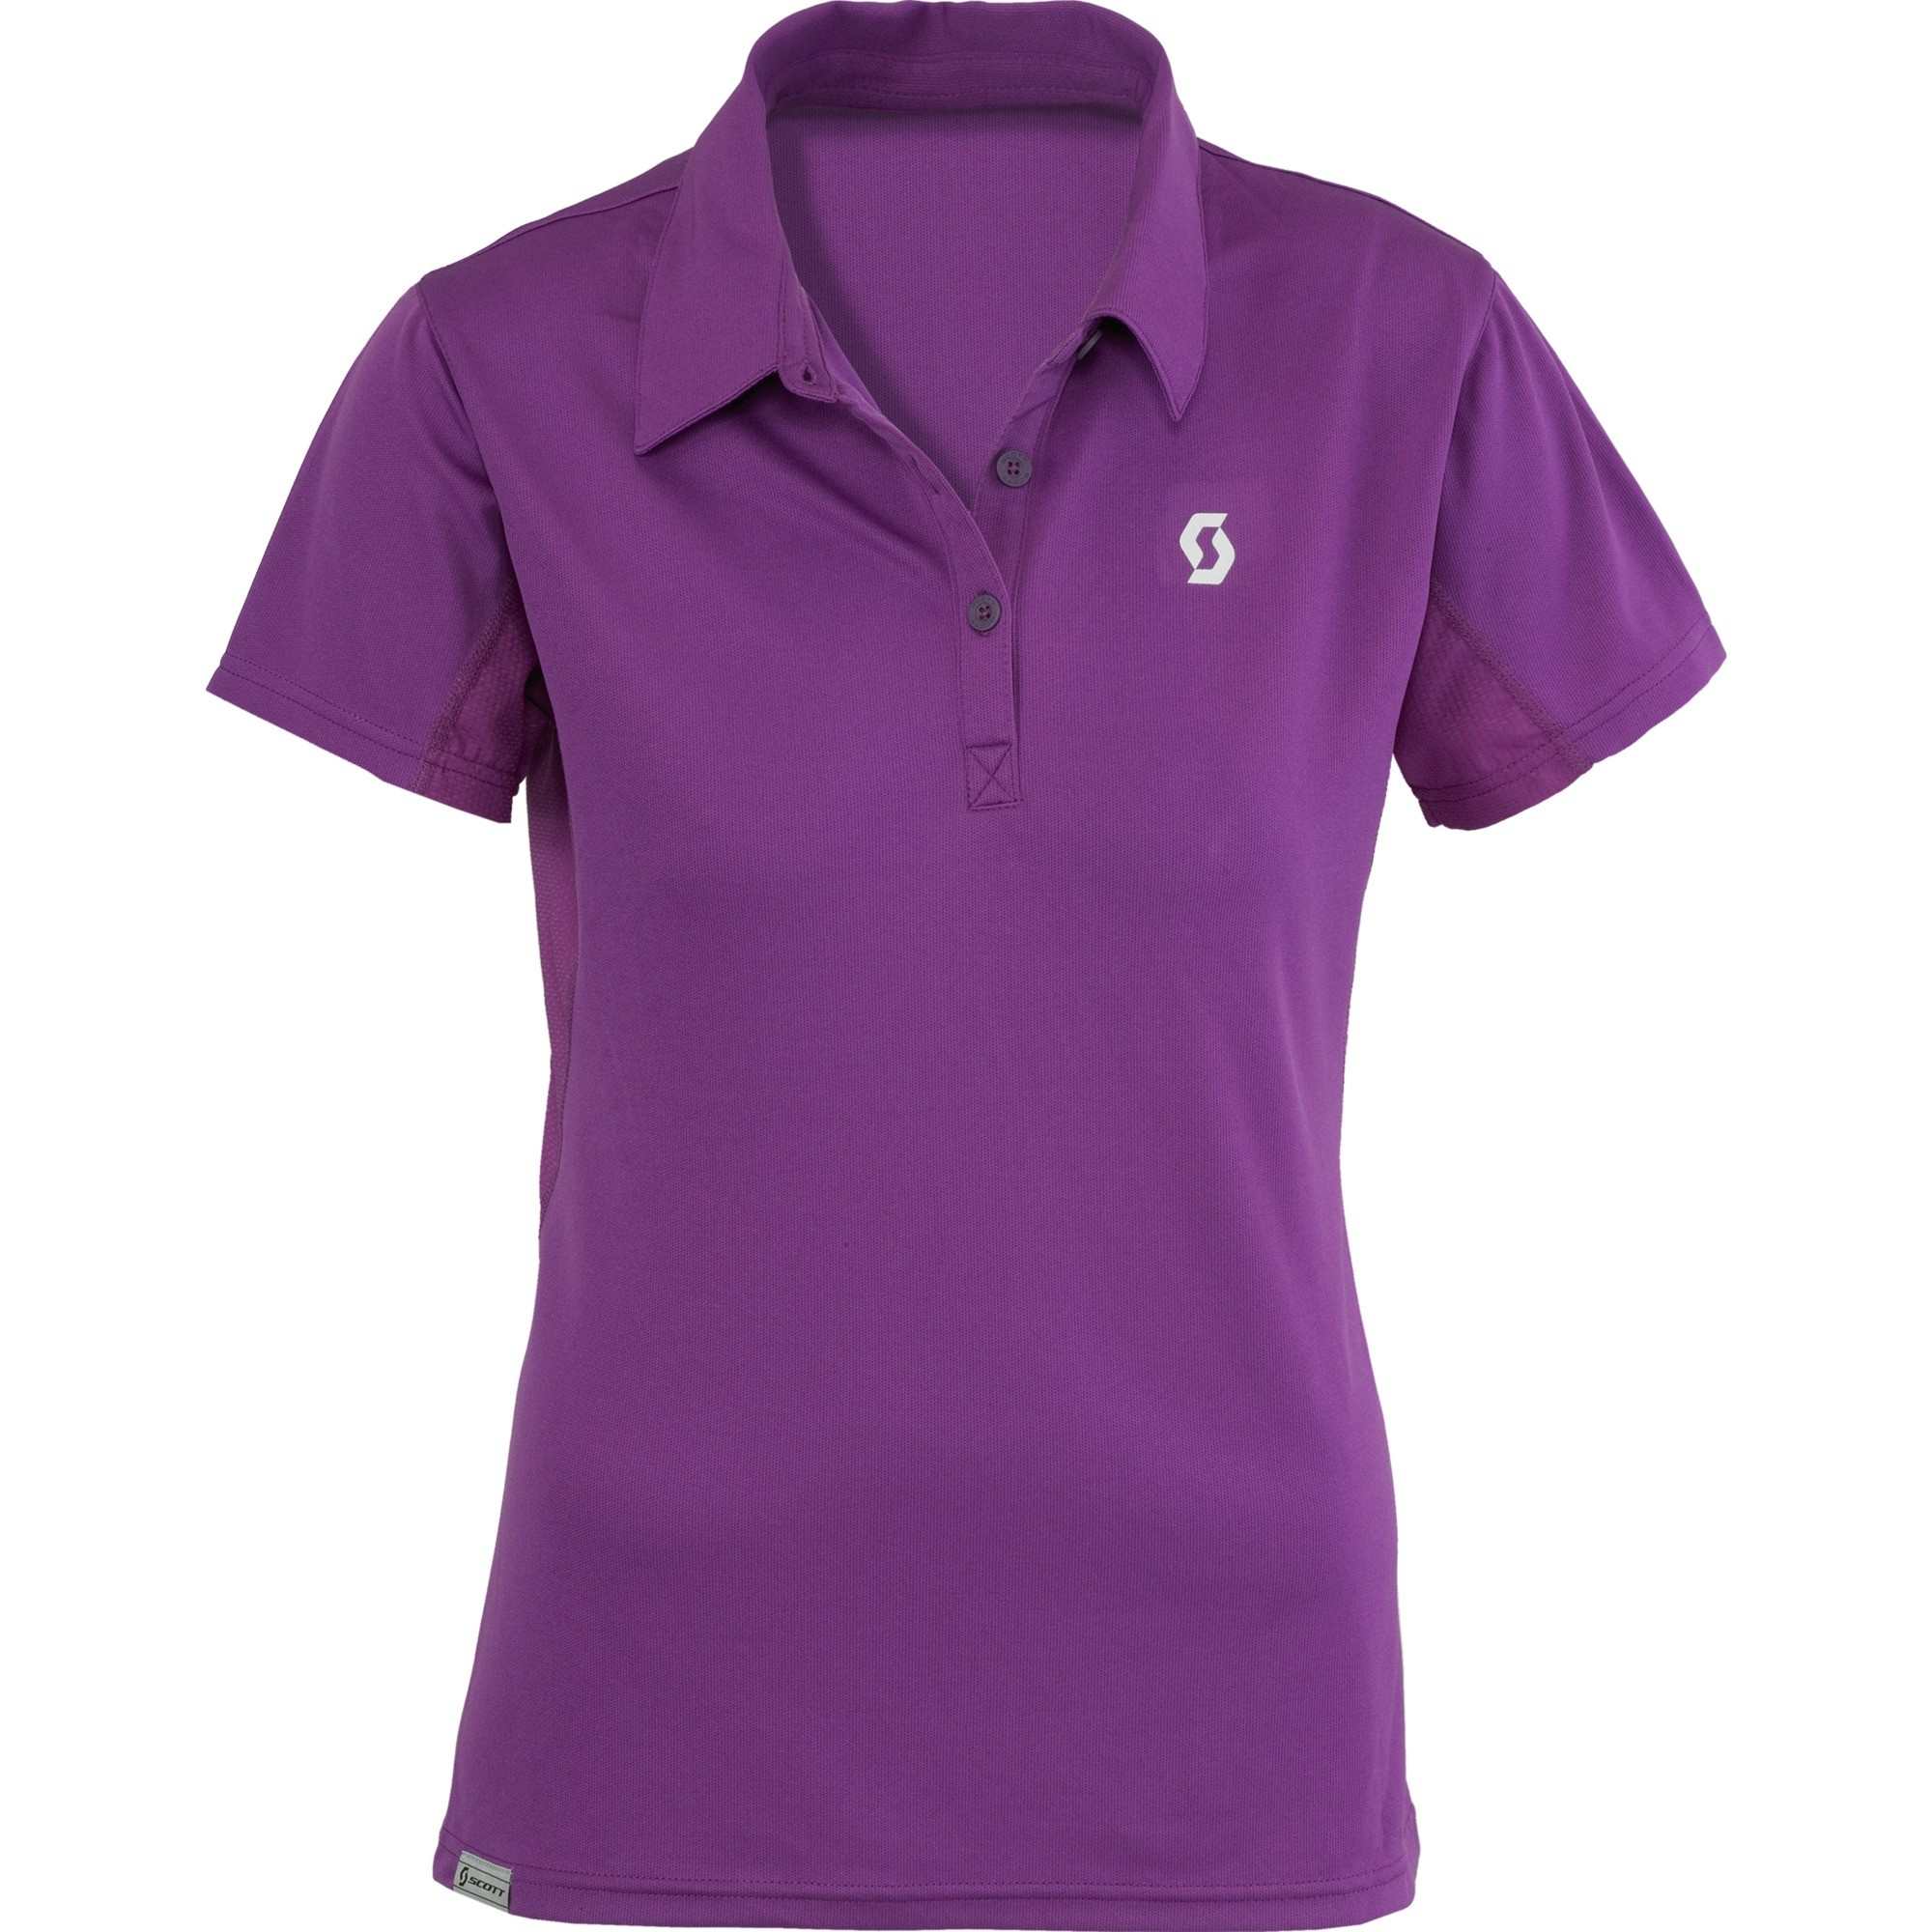 Womens Polo Tshirts In Cotton Creative India Exports